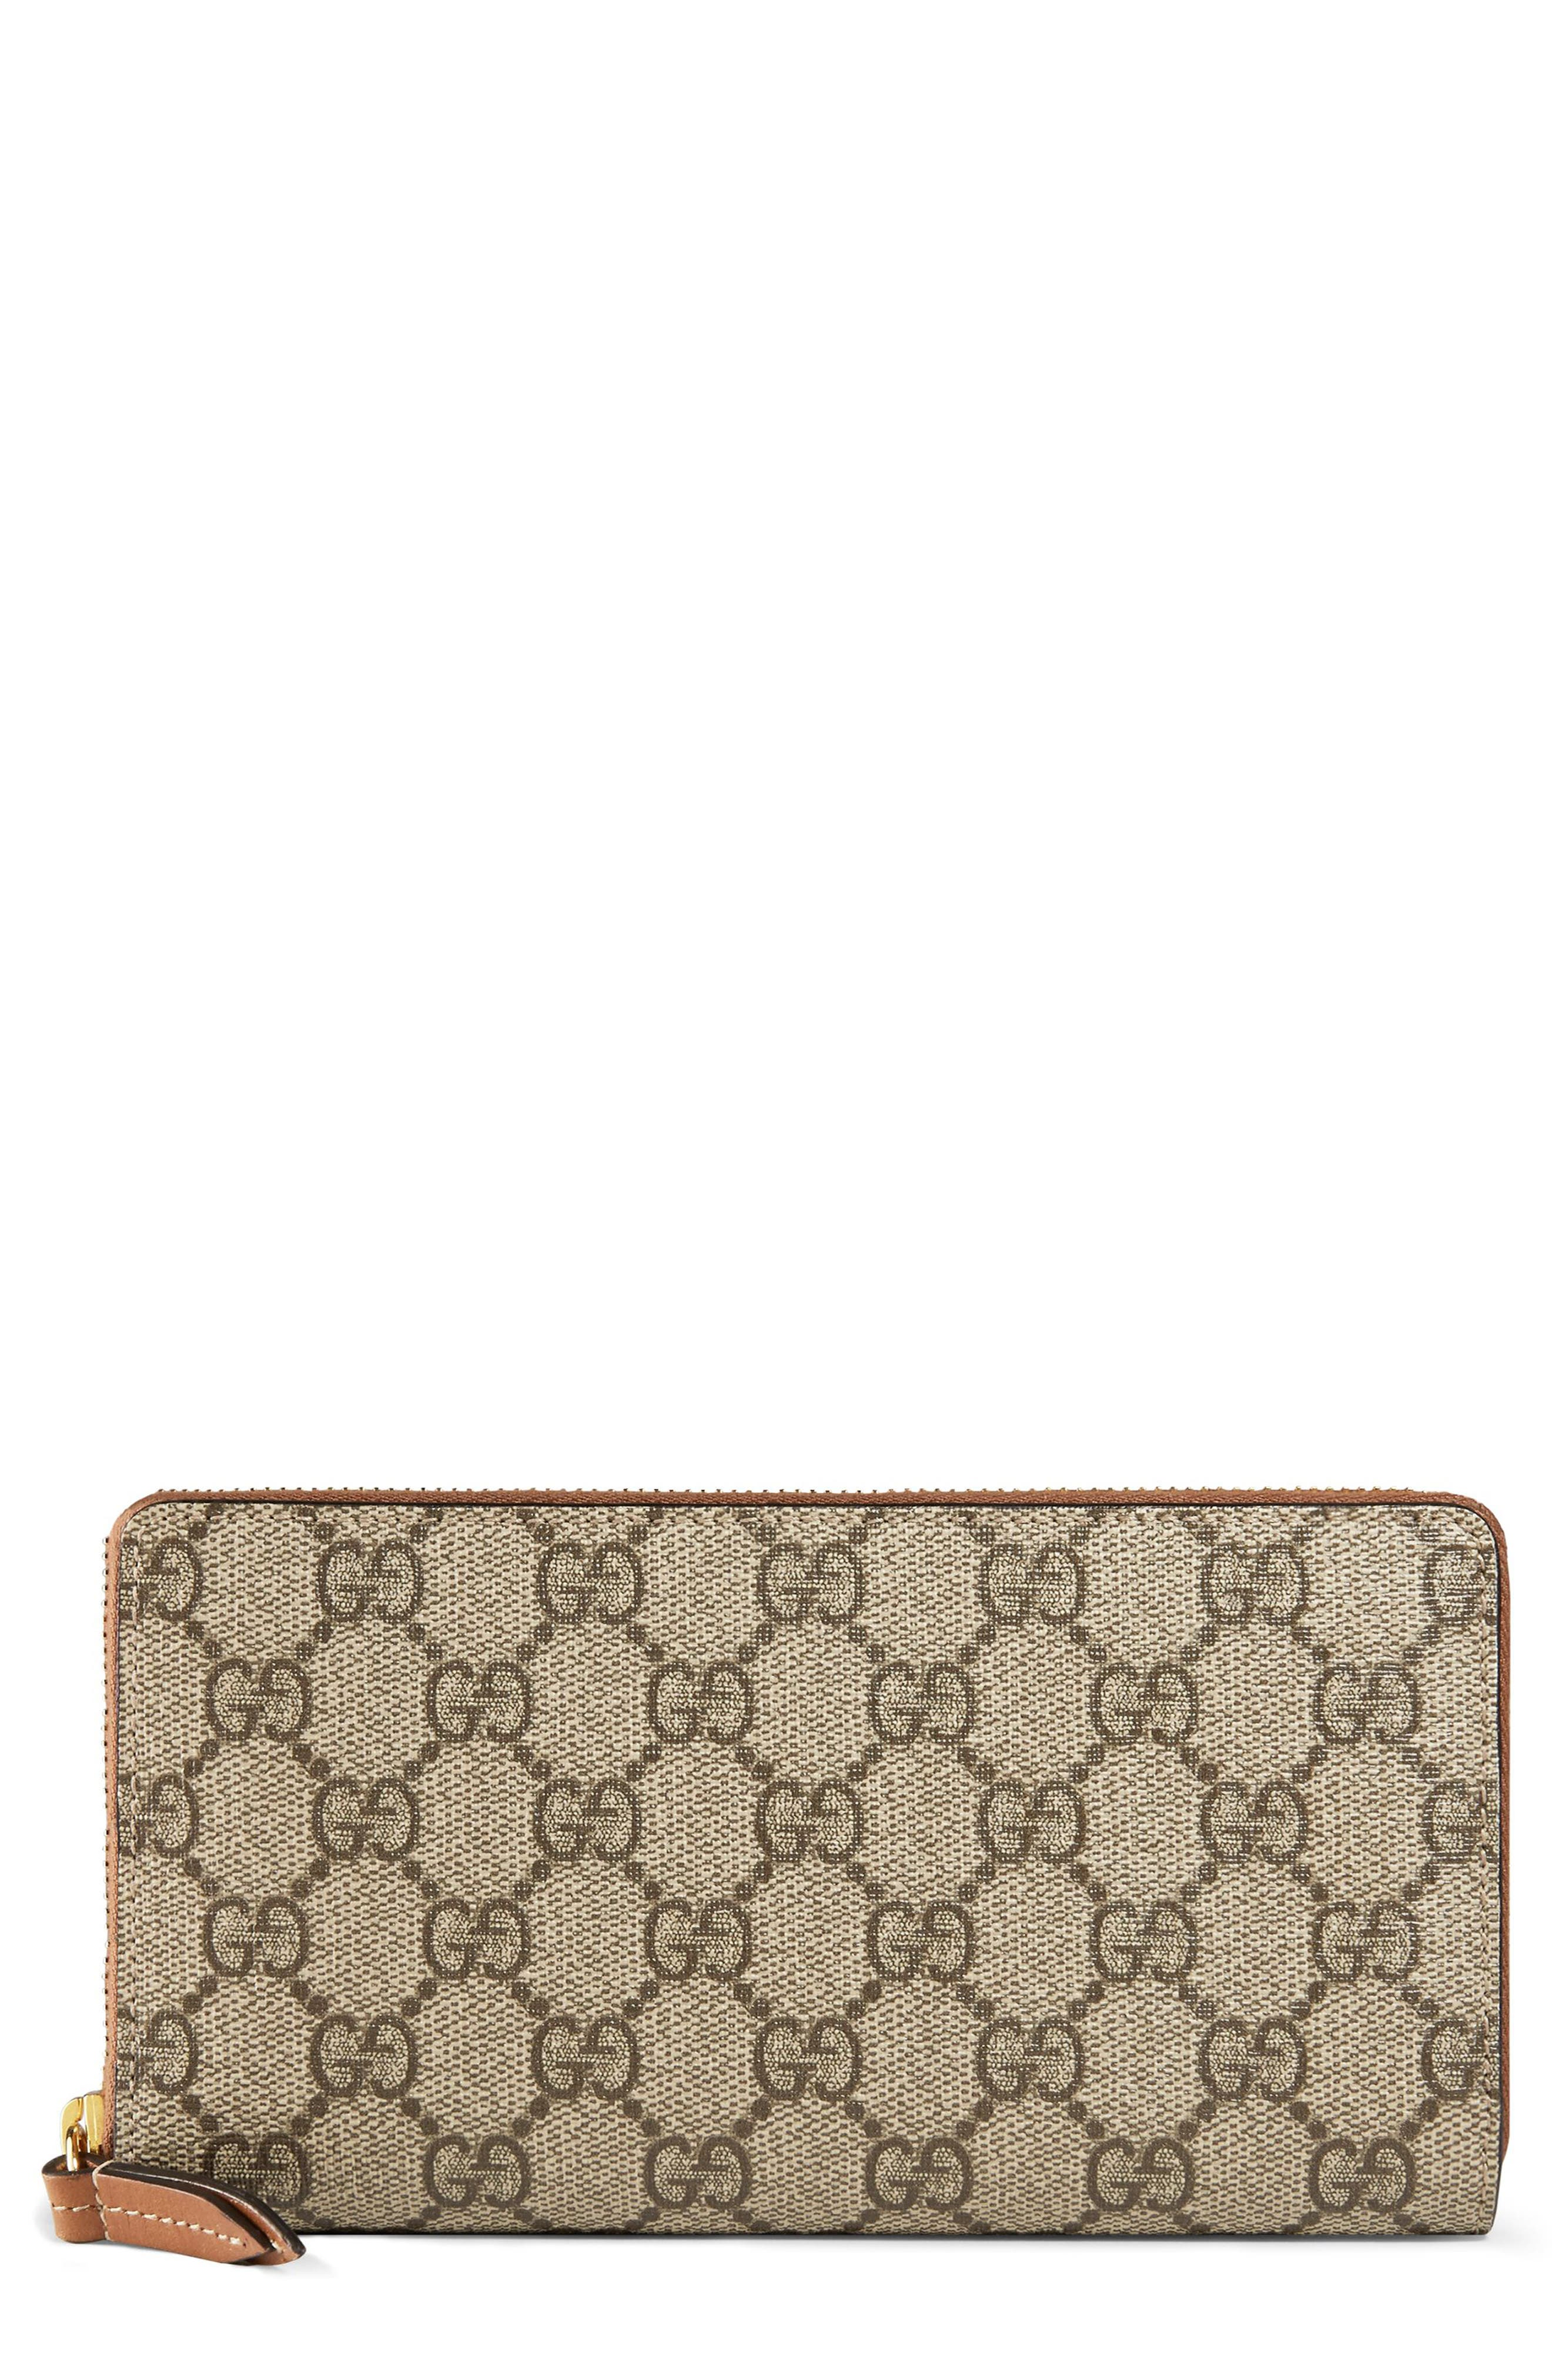 GG Supreme Zip Around Canvas Wallet,                         Main,                         color, BEIGE/EBONY/CUIR